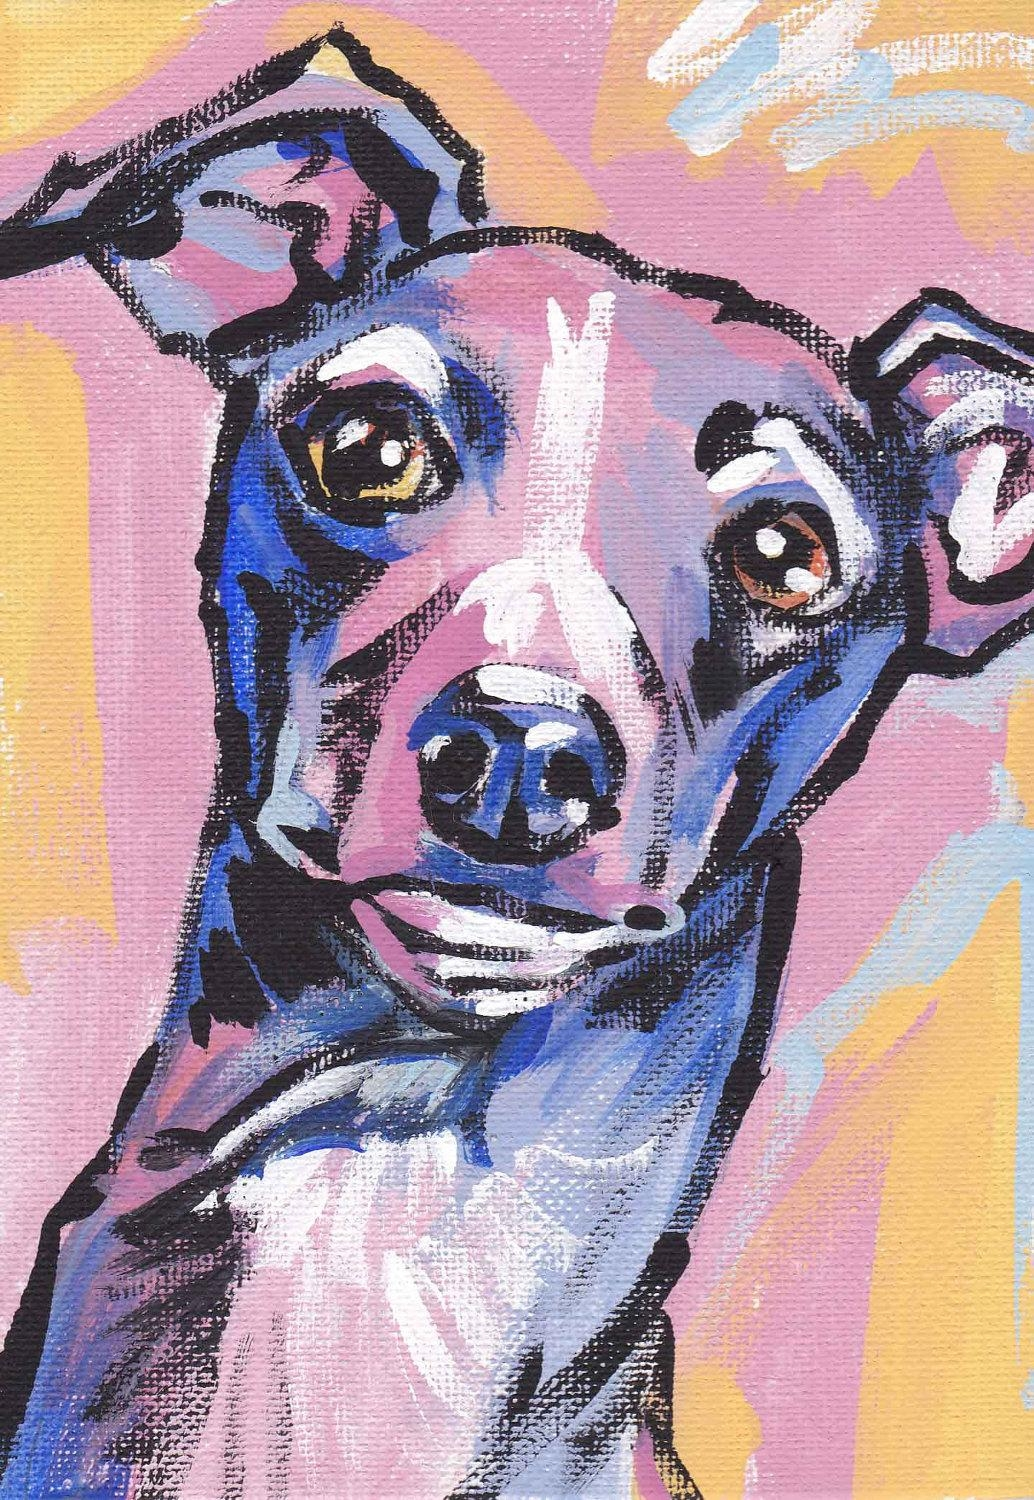 Italian Greyhound Art Print Dog Pop Art Bright Colors Intended For Italian Greyhound Wall Art (View 16 of 20)